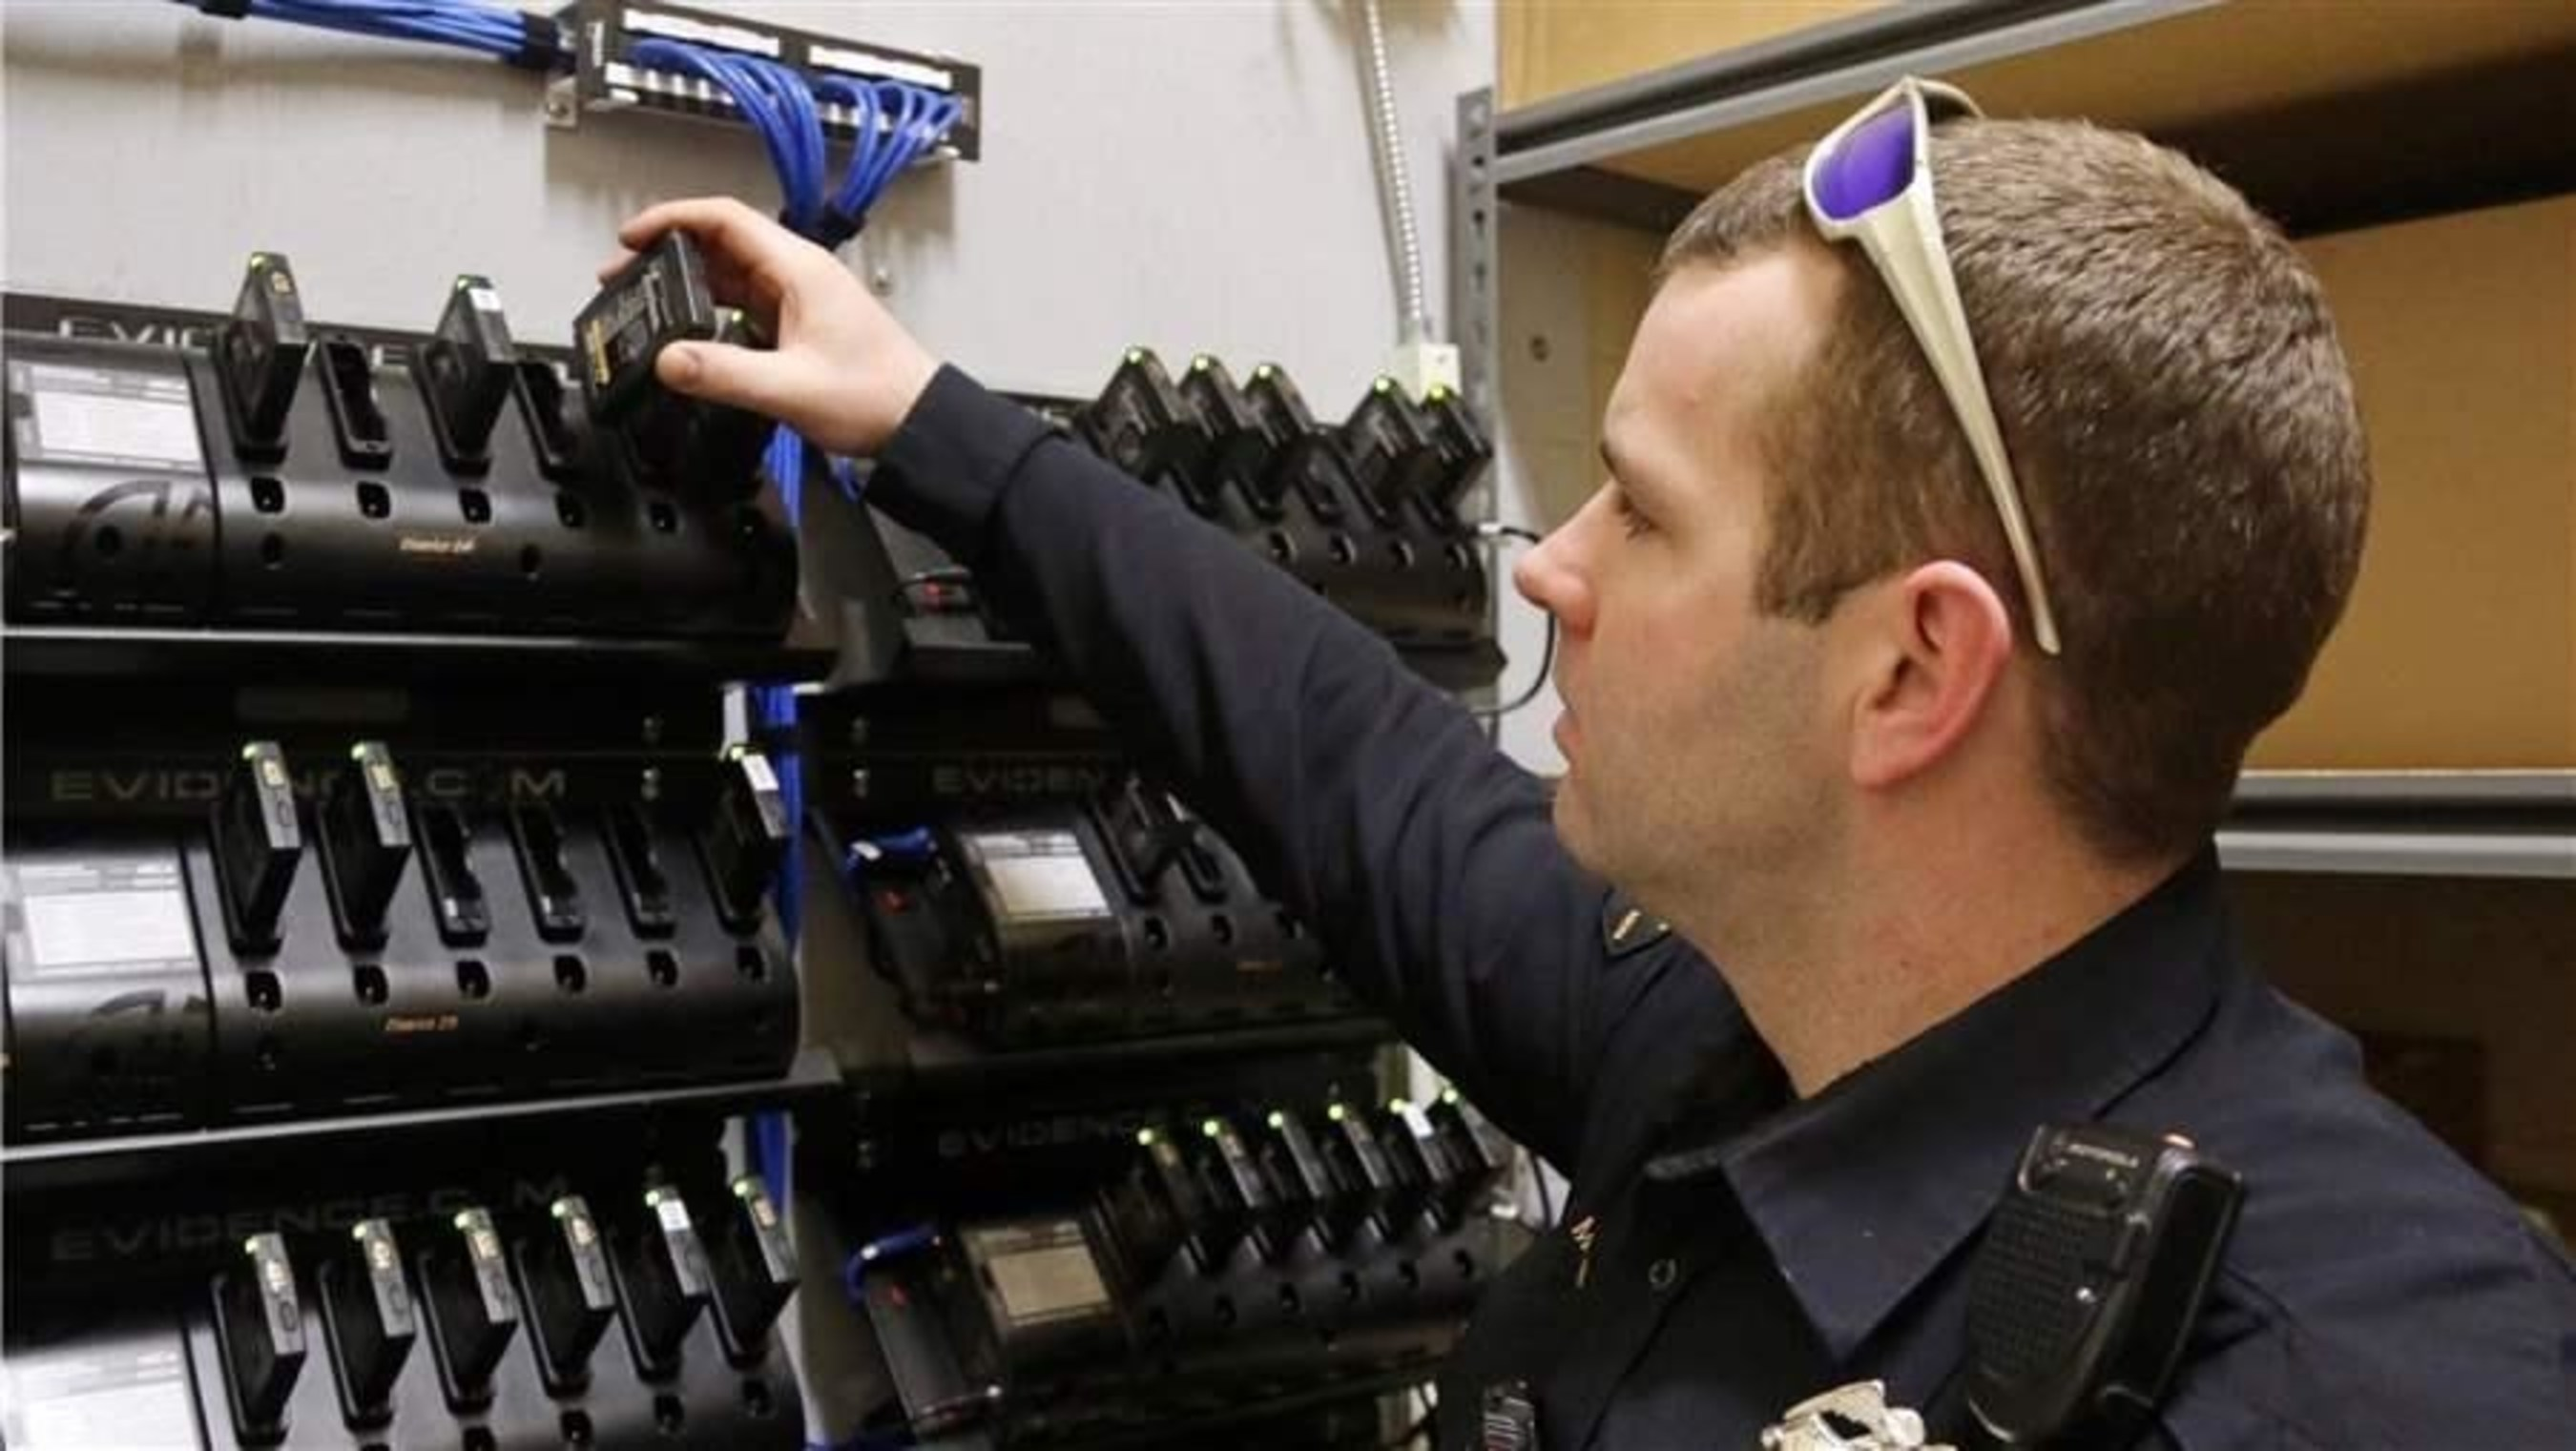 New Orleans is the first U.S. city to use a new video and audio management simplification tool for police officers who use body cameras on patrol.  Vu Digital, a Jackson, Mississippi-based video metadata company, is providing the service to the Orleans Parish District Attorney to help quickly, efficiently and accurately process video evidence.